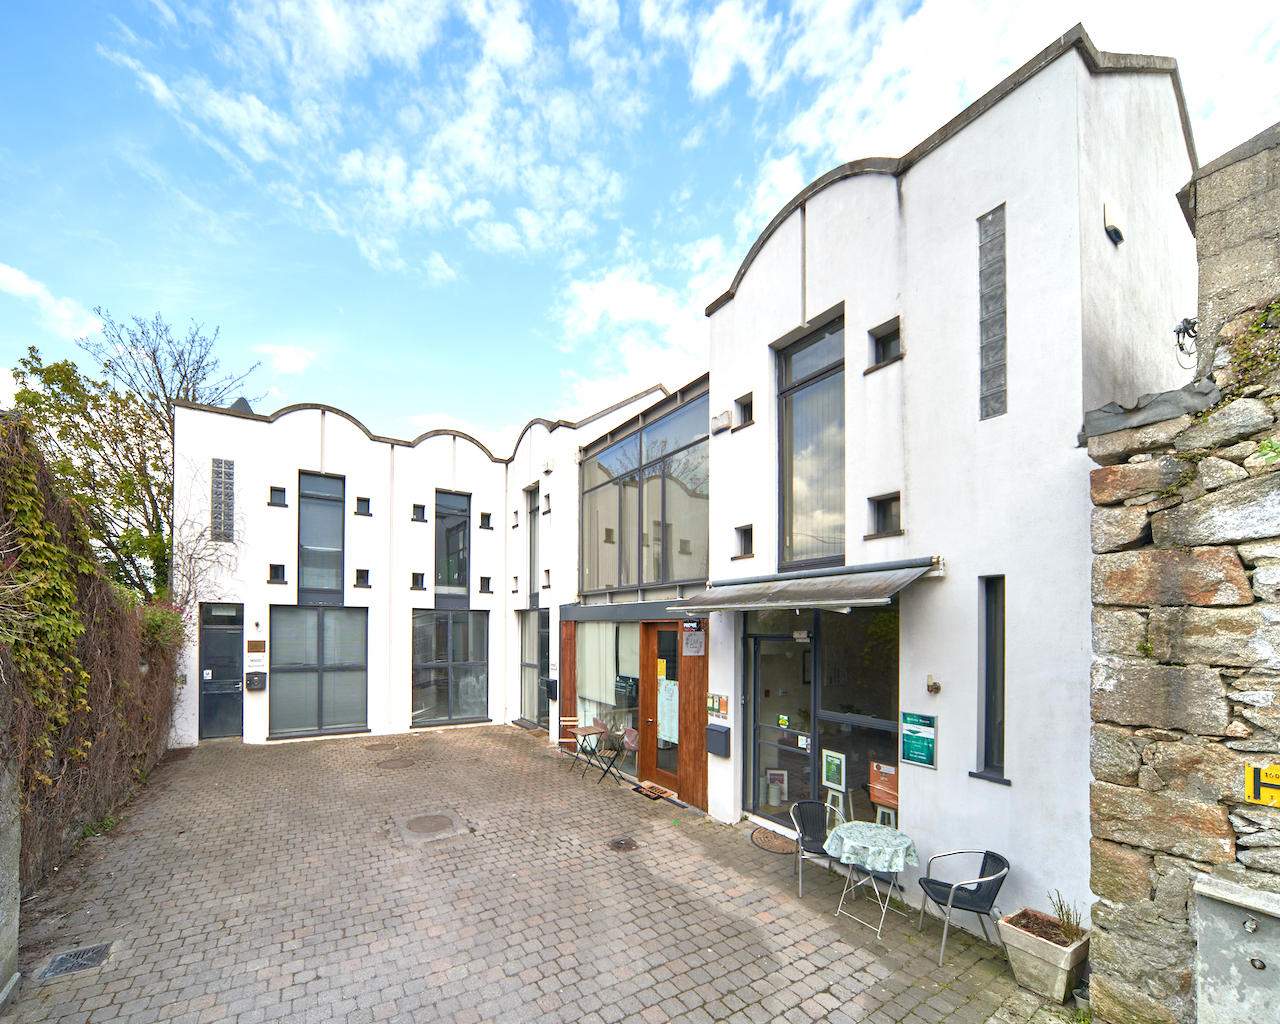 Investment with Planning Permission, Dalkey, Co. Dublin